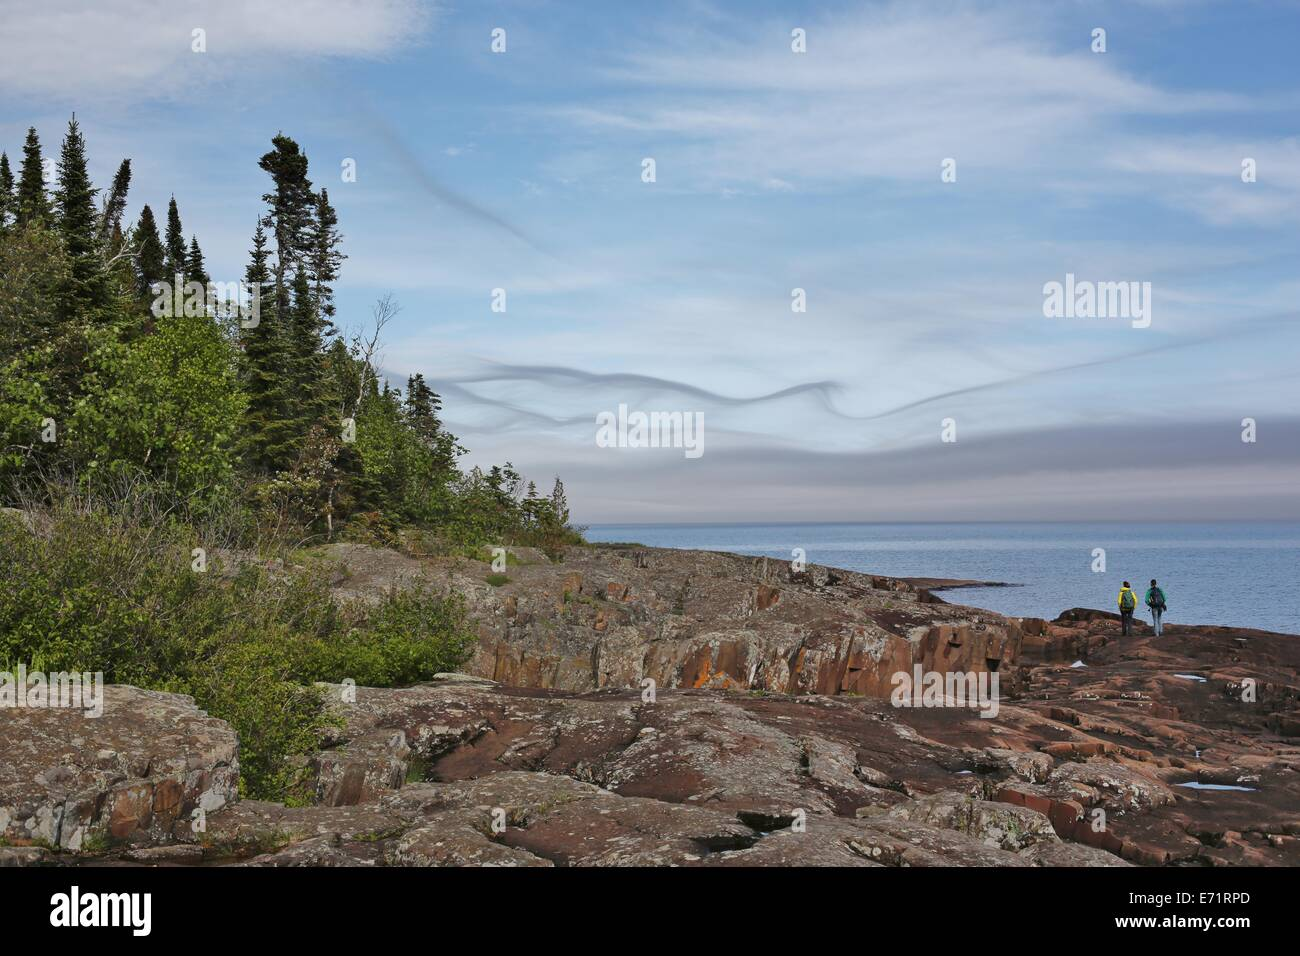 Two people hiking beneath beautiful, wispy clouds on the rocky shore of Lake Superior. - Stock Image